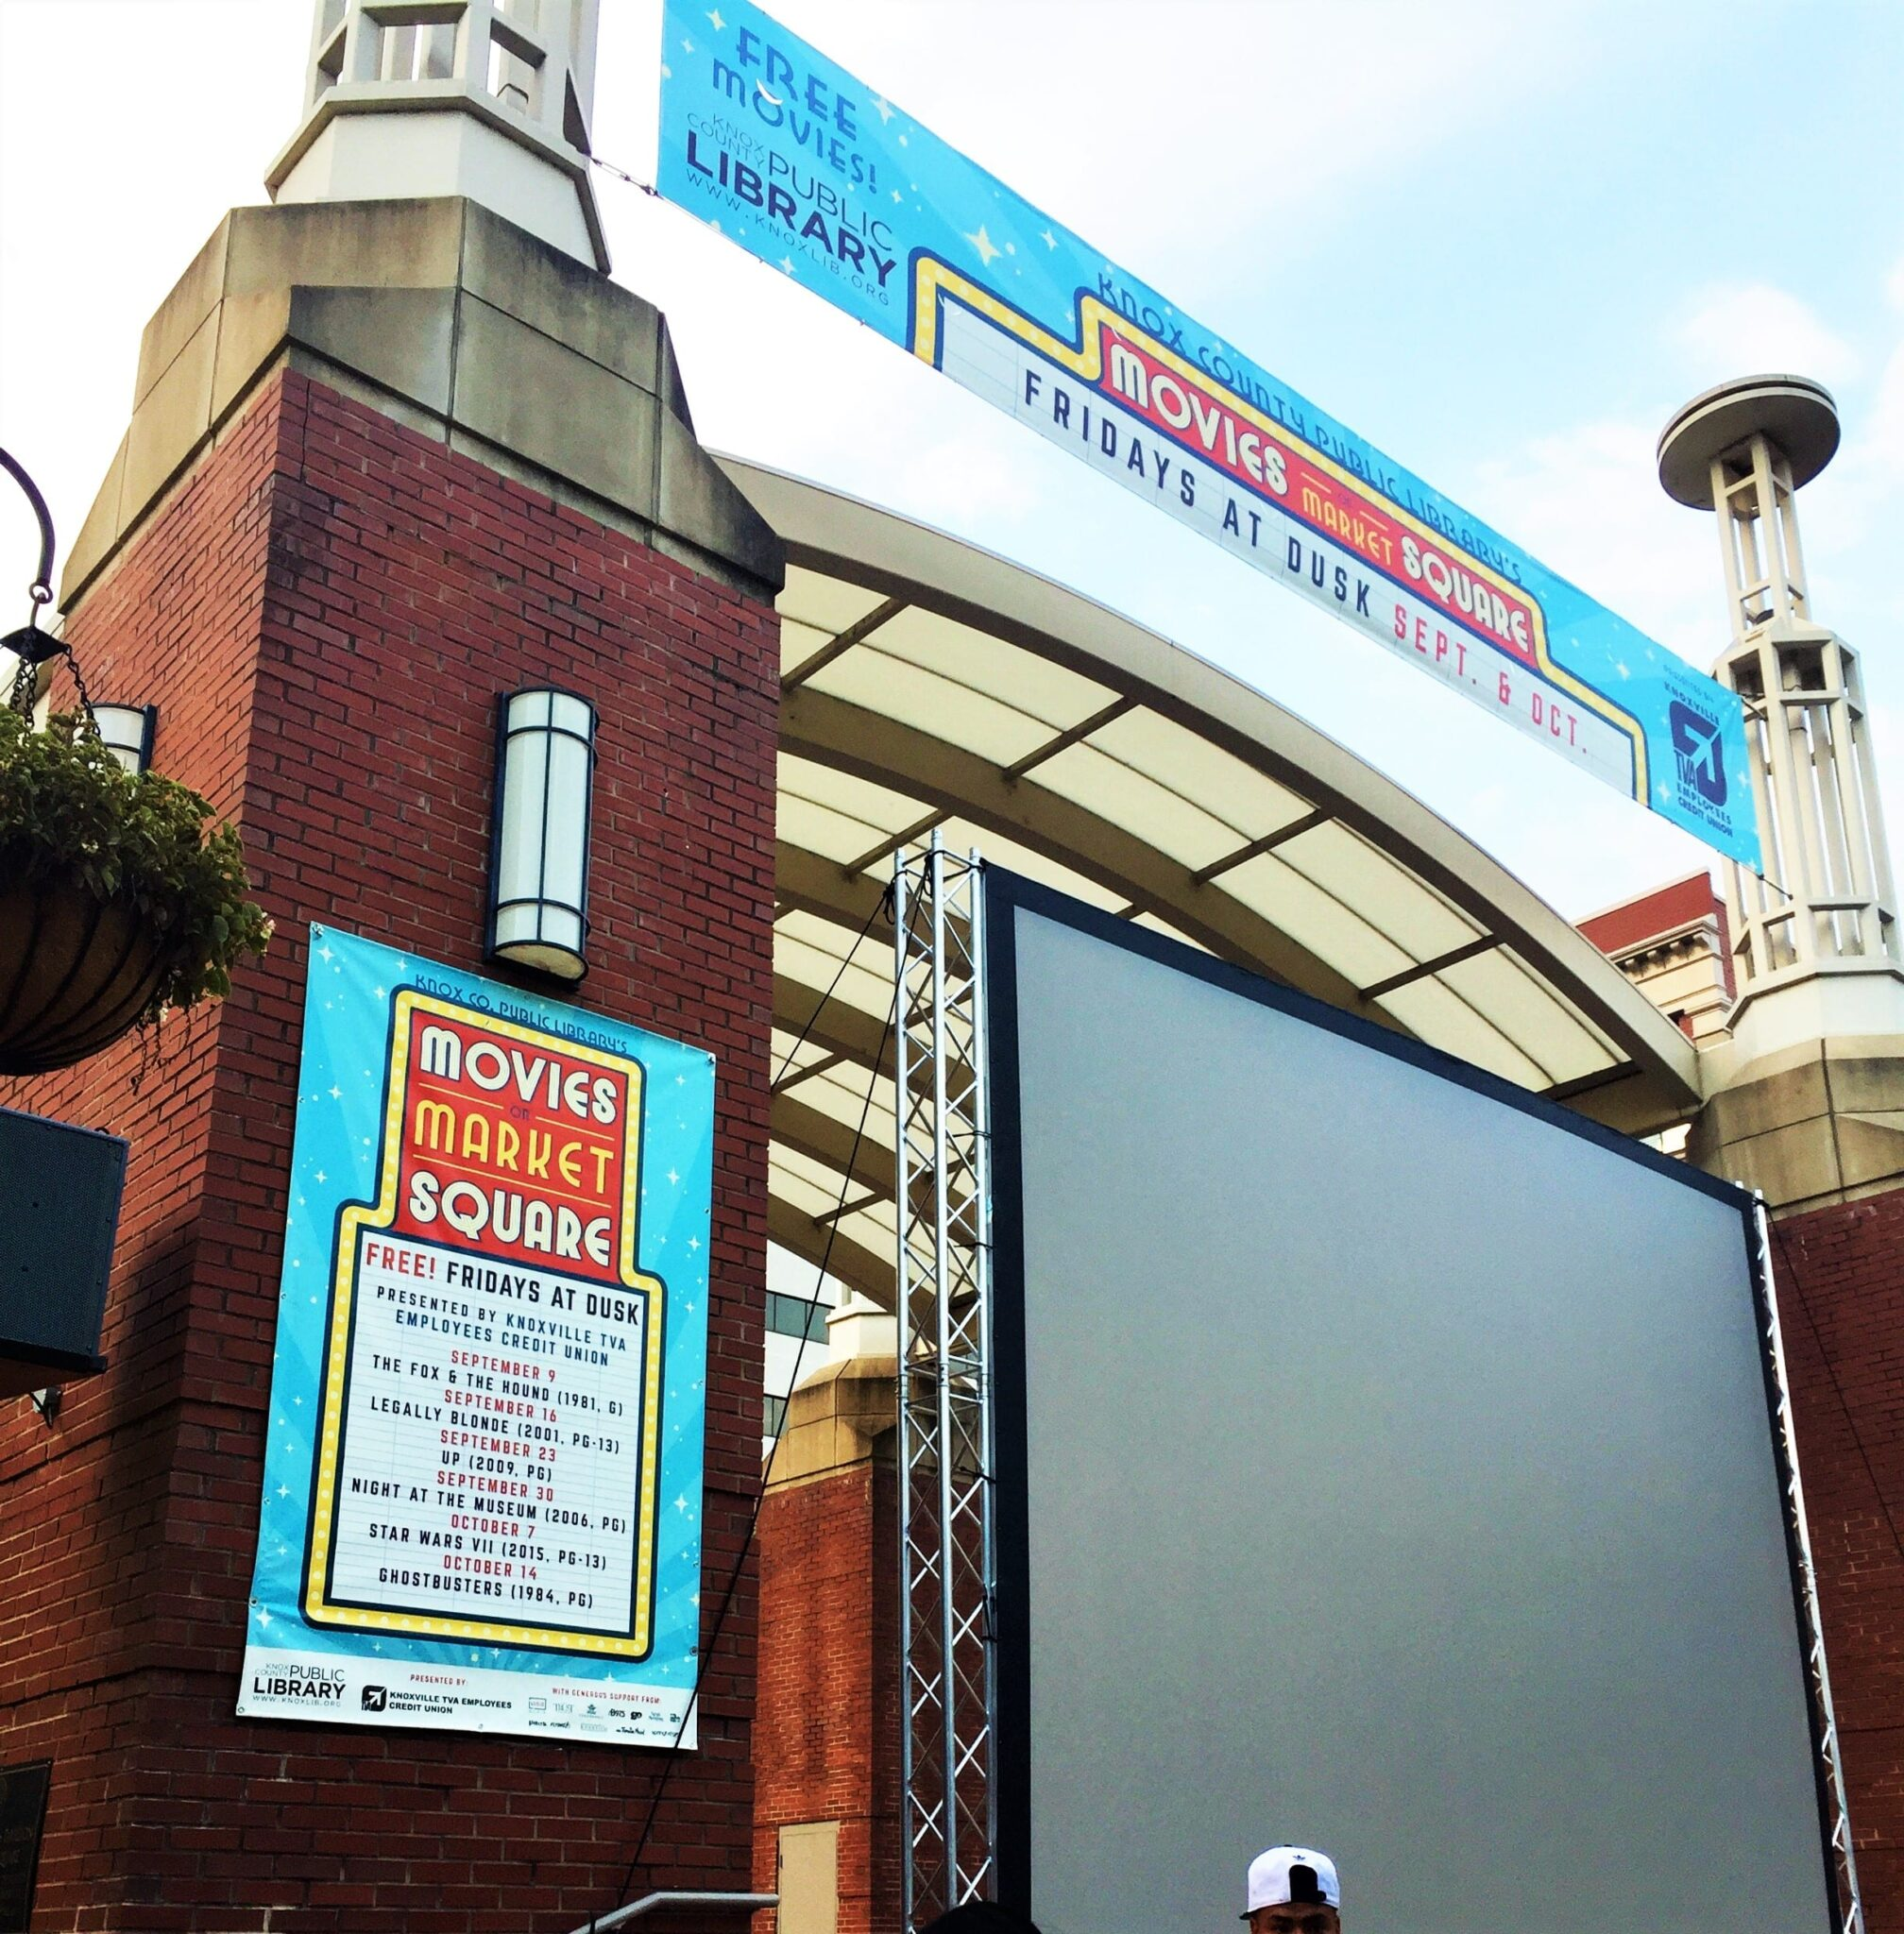 Opinion: Movies on Market Square is a fun, local activity for